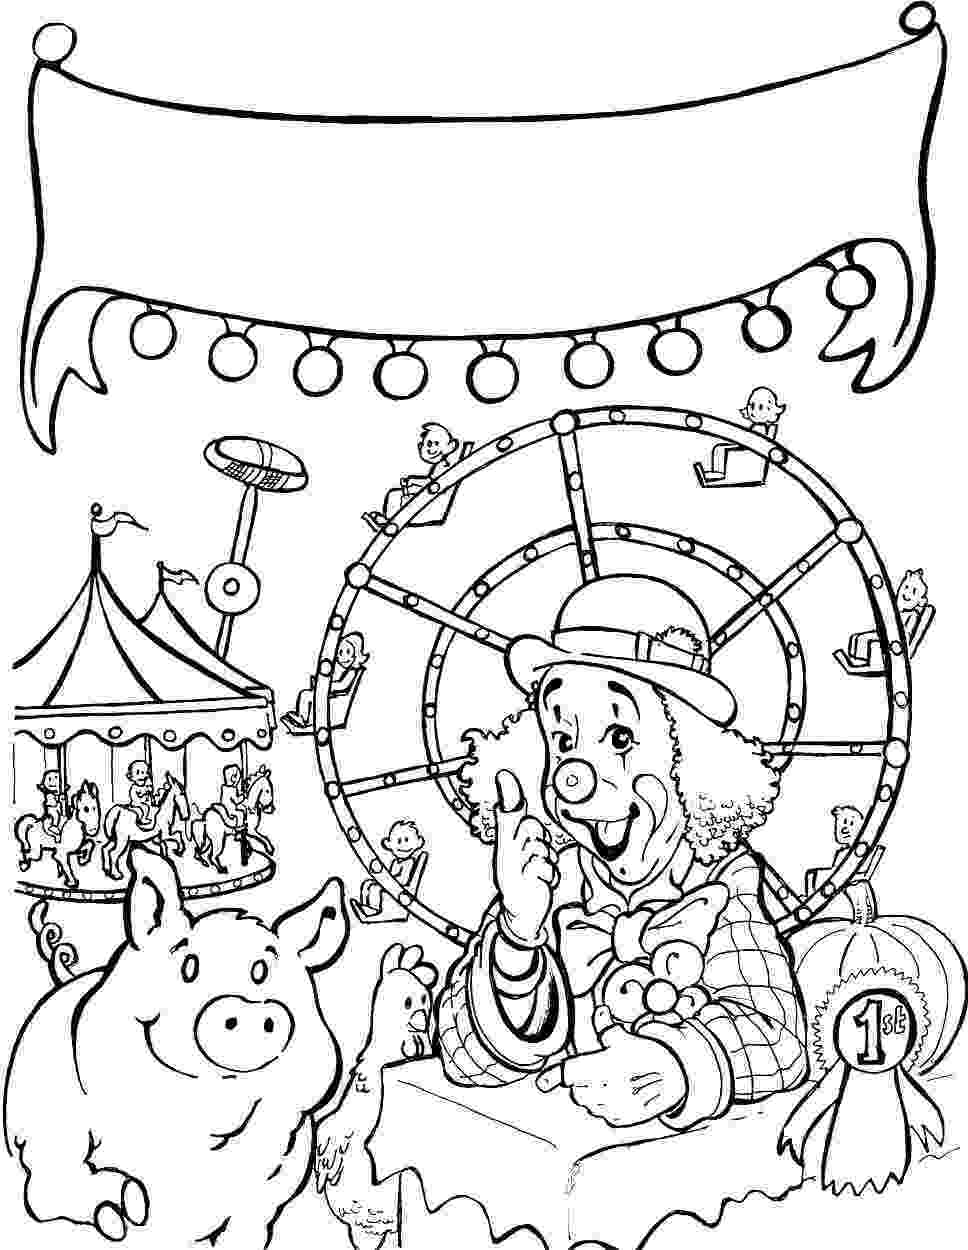 ag coloring pages american girl coloring pages beforever small dolls in a pages ag coloring